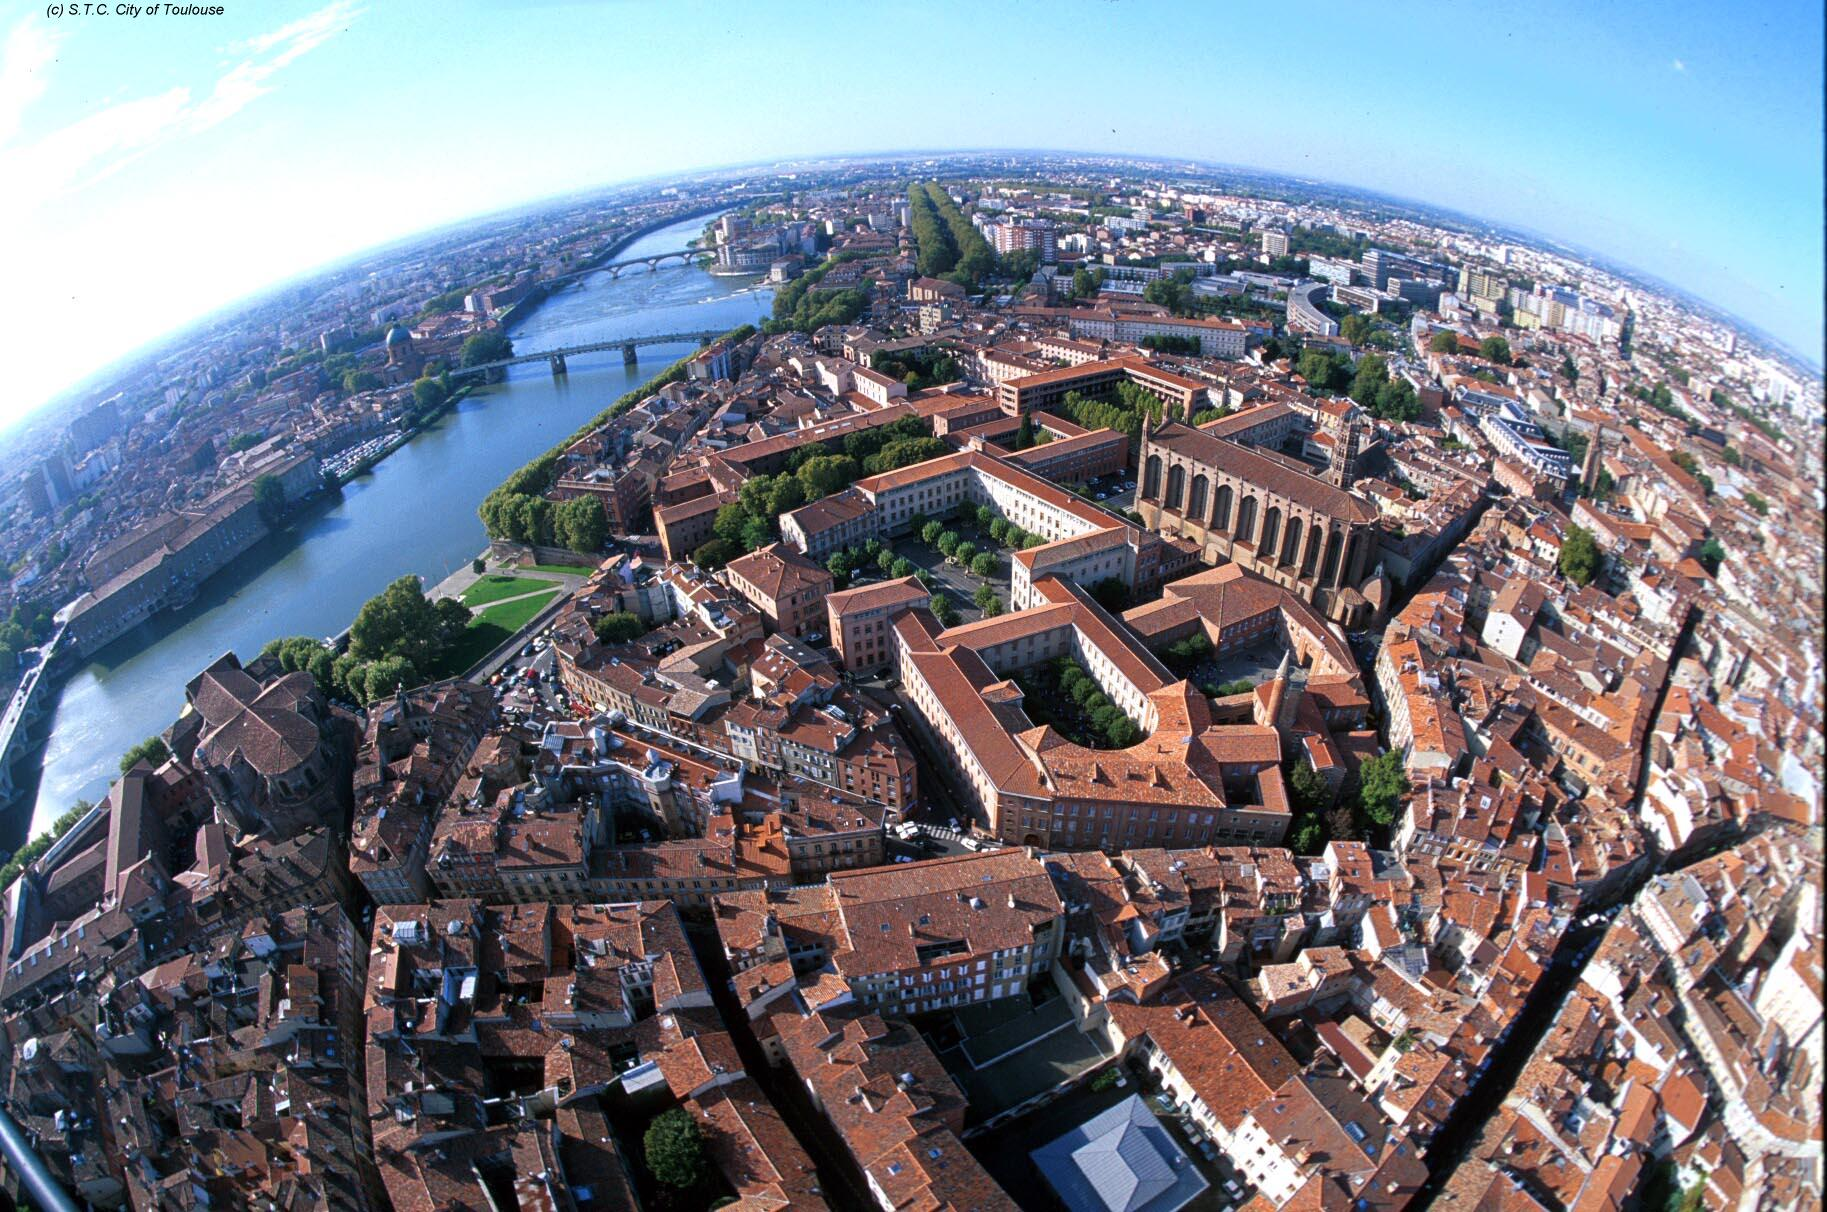 Air view of the city of TOULOUSE - Click on to magnify it (410Ko)